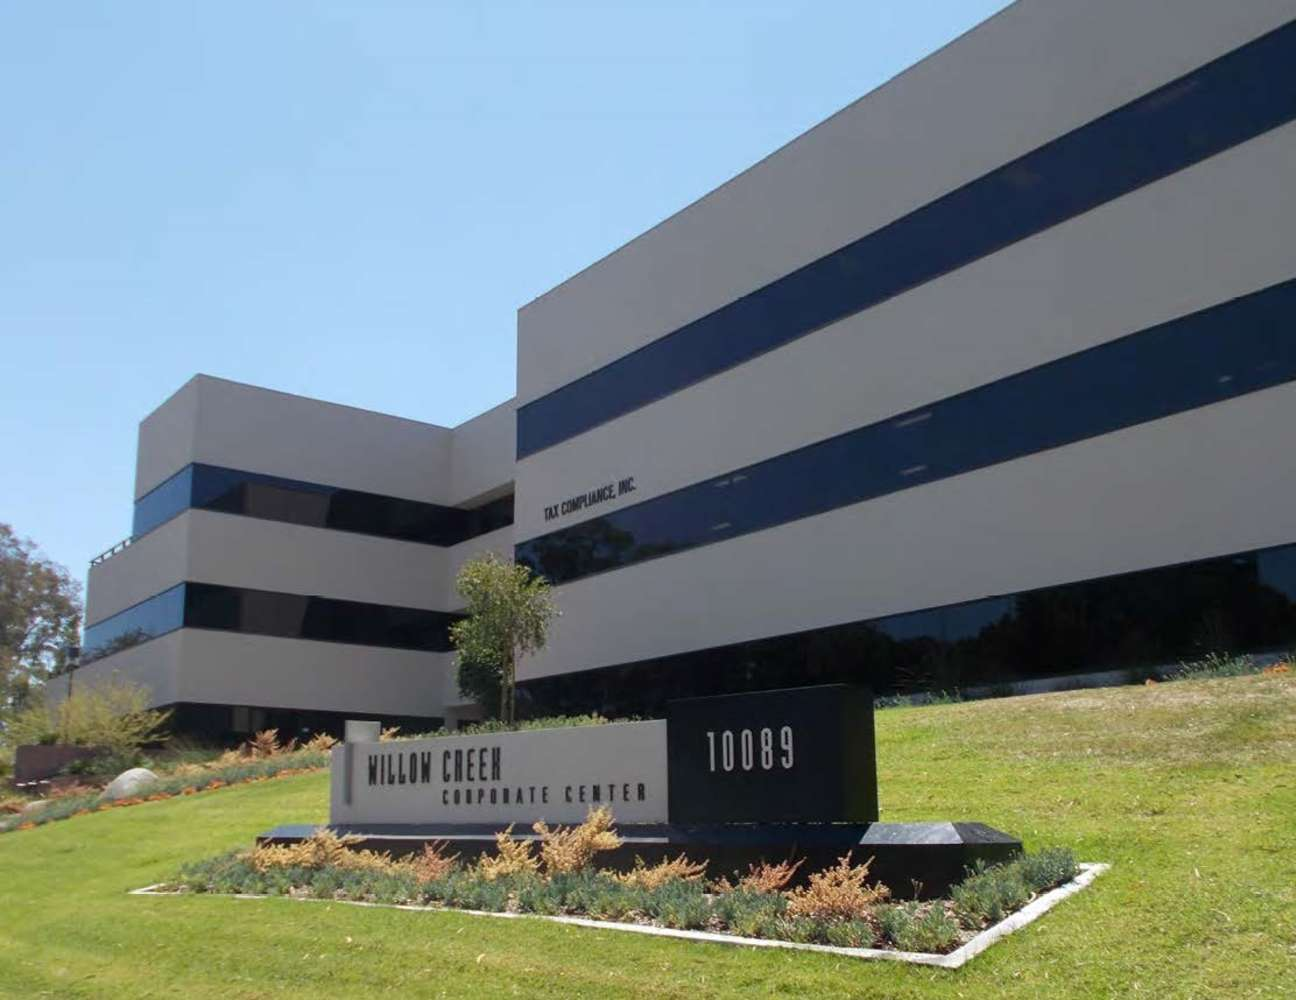 Office San diego, 92131 - Willow Creek Corporate Center